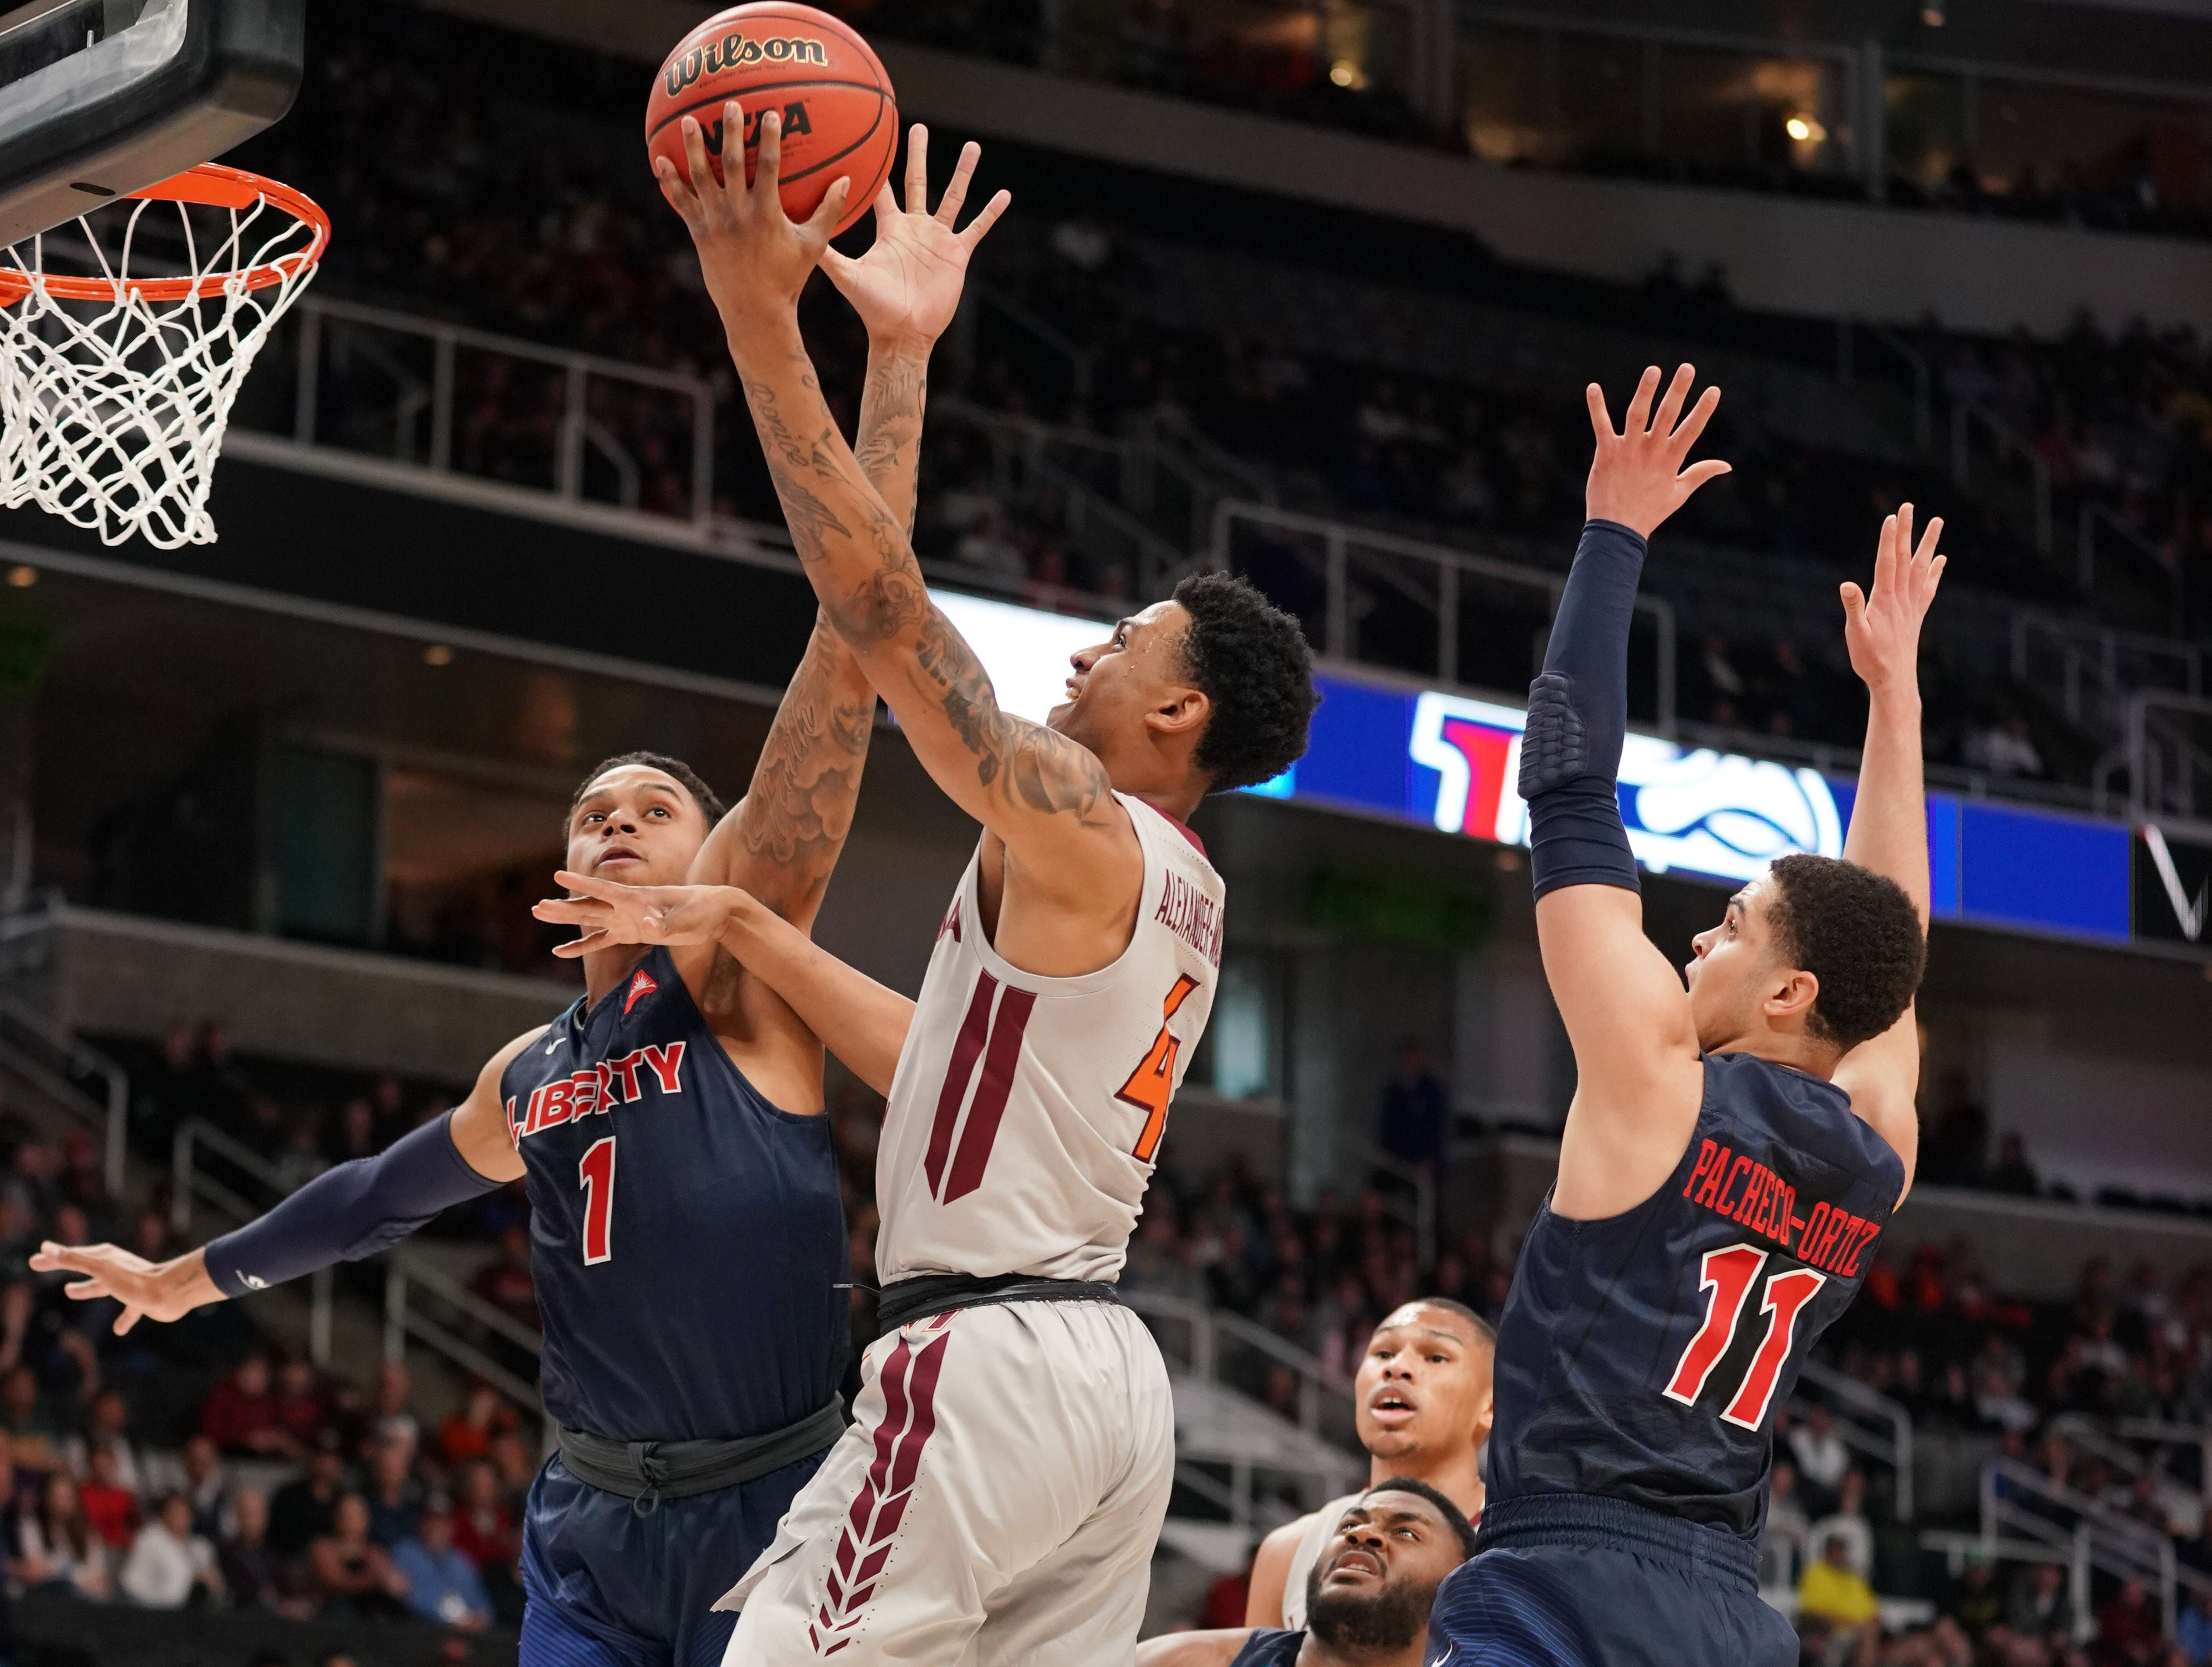 Round of 32: Virginia Tech guard Nickeil Alexander-Walker (4) shoots between Liberty guards Caleb Homesley (1) and Georgie Pacheco-Ortiz (11) during the first half.